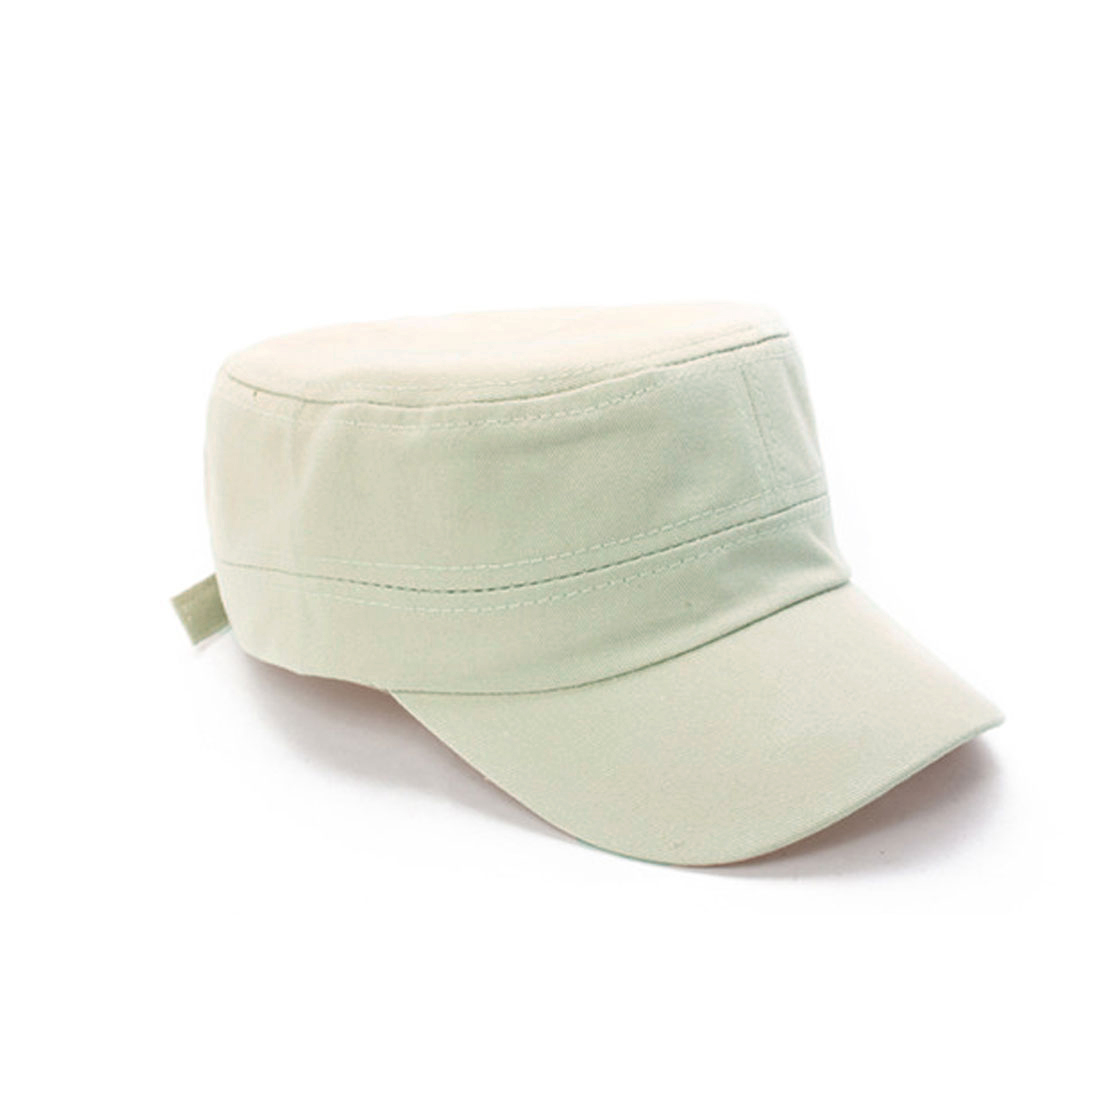 Unisex Adjustable Metal Buckle Closure Back Peaked Cap White